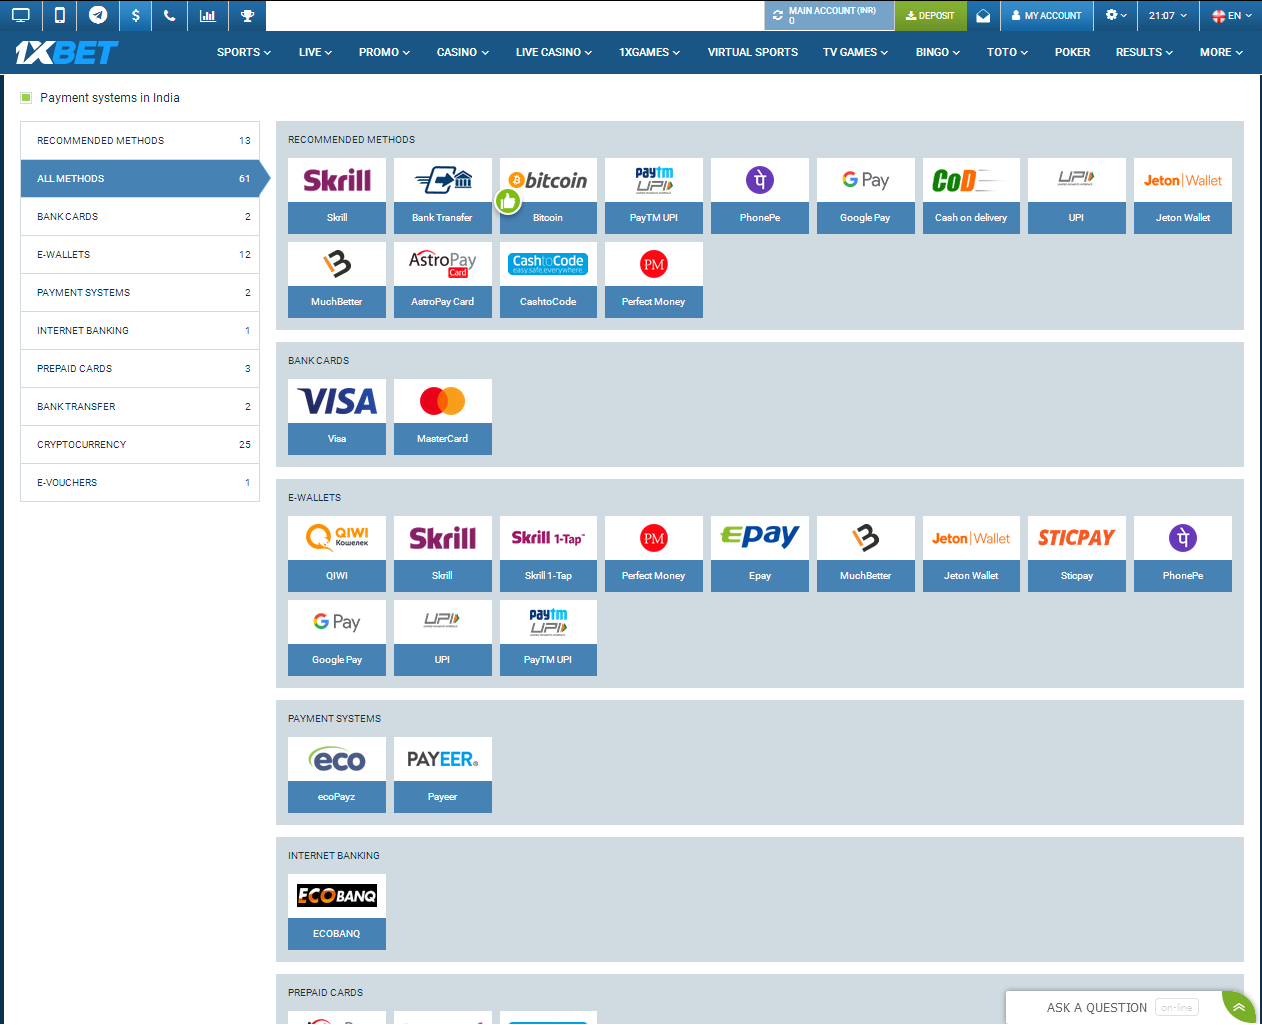 Payment Methods for India